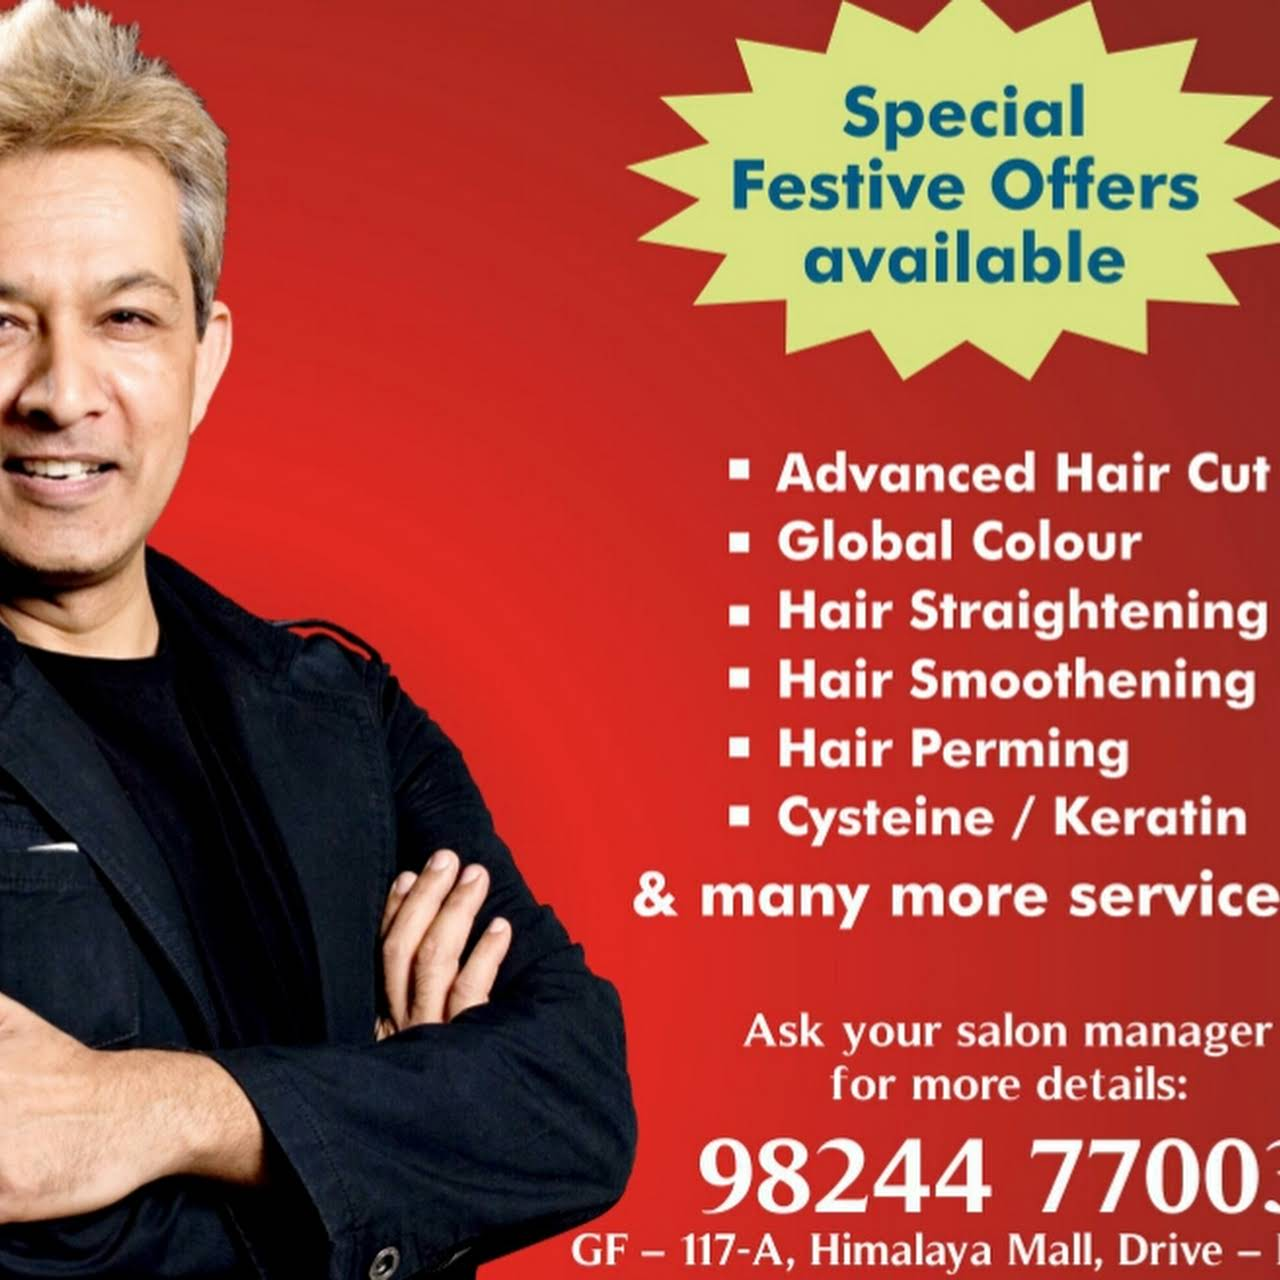 Jawed Habib Hair Studio Hair Is Jawed Habib Style With Fun